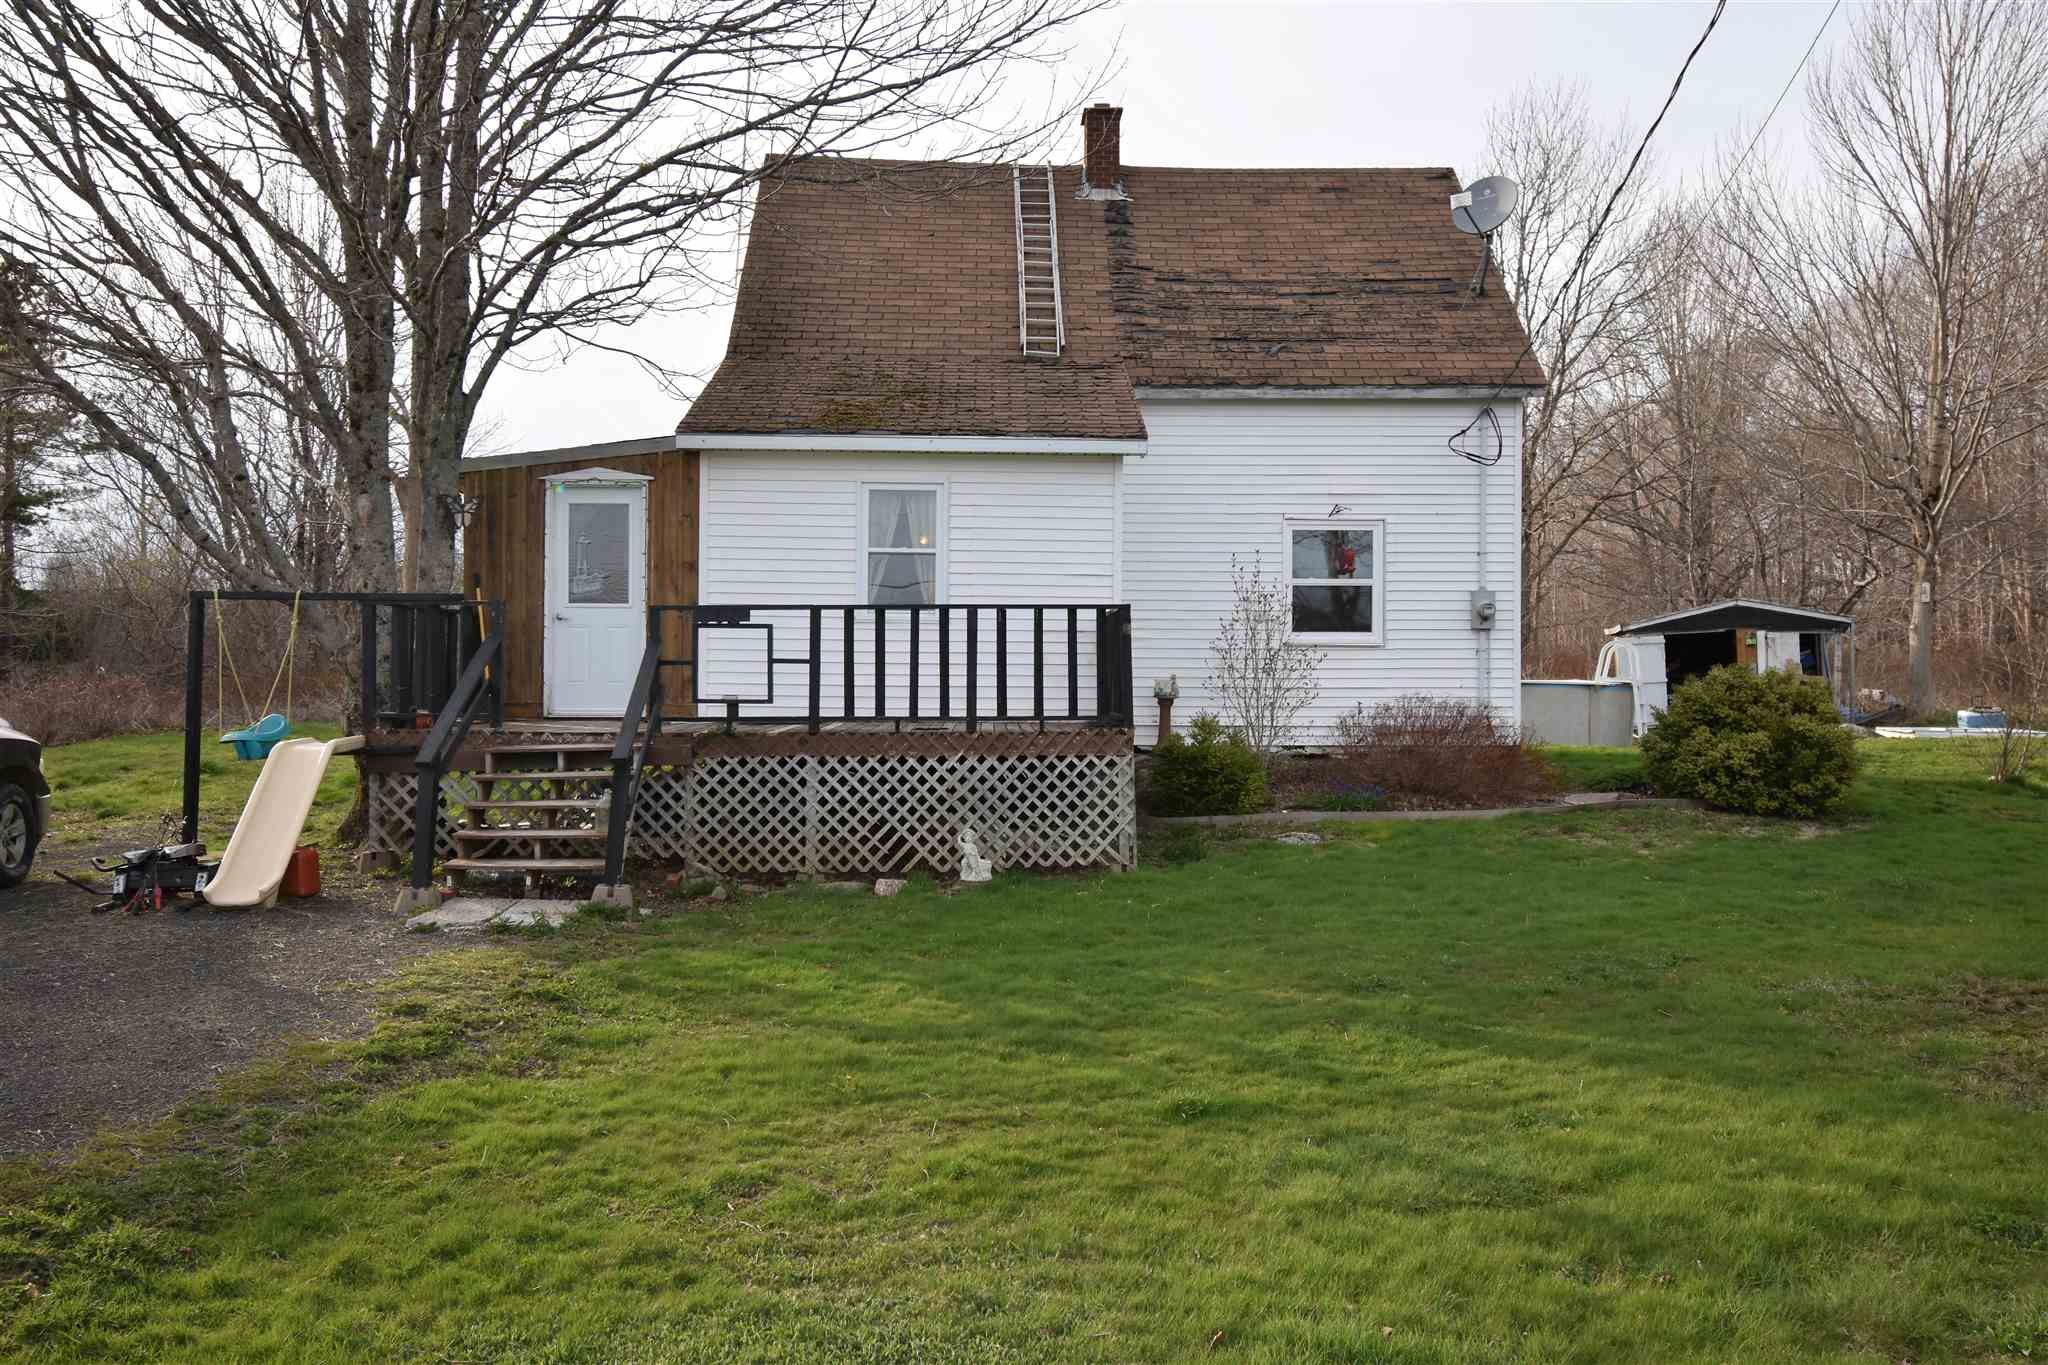 Main Photo: 863 DOUCETTEVILLE Road in Doucetteville: 401-Digby County Residential for sale (Annapolis Valley)  : MLS®# 202110218